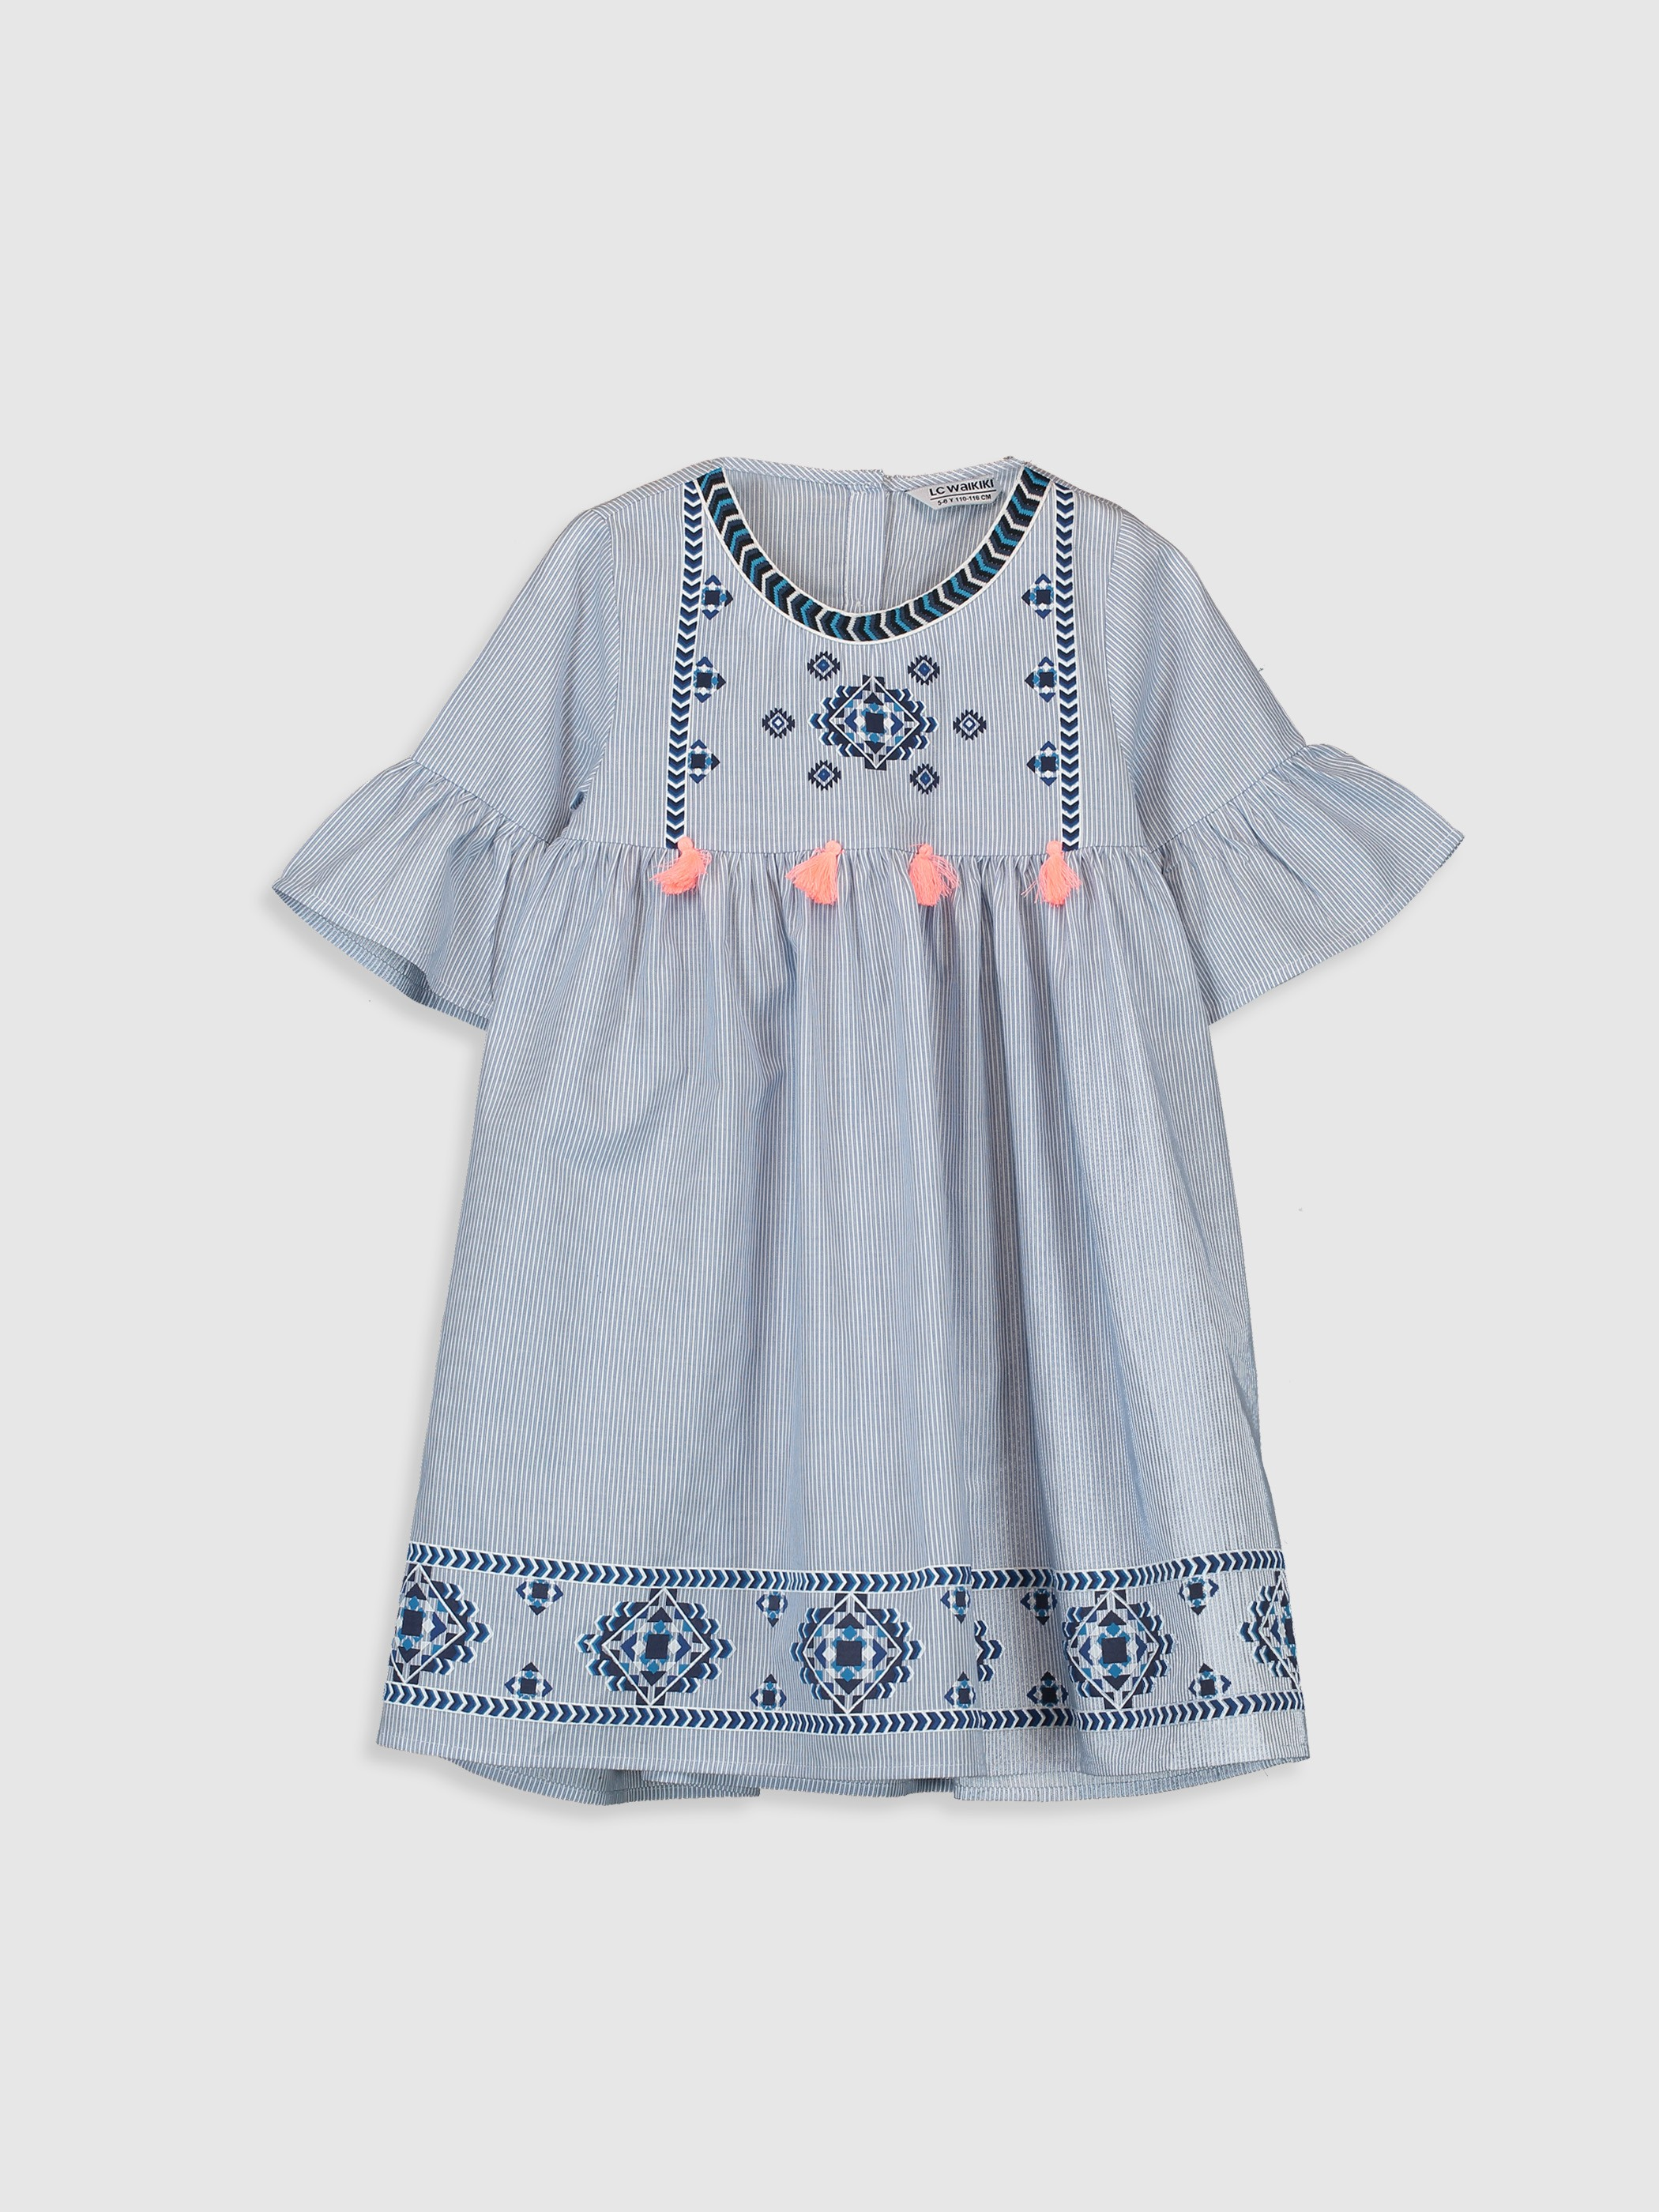 BLUE - Girl's's Figured Cotton Dress Mother and Daughter Matching - 9WQ388Z4